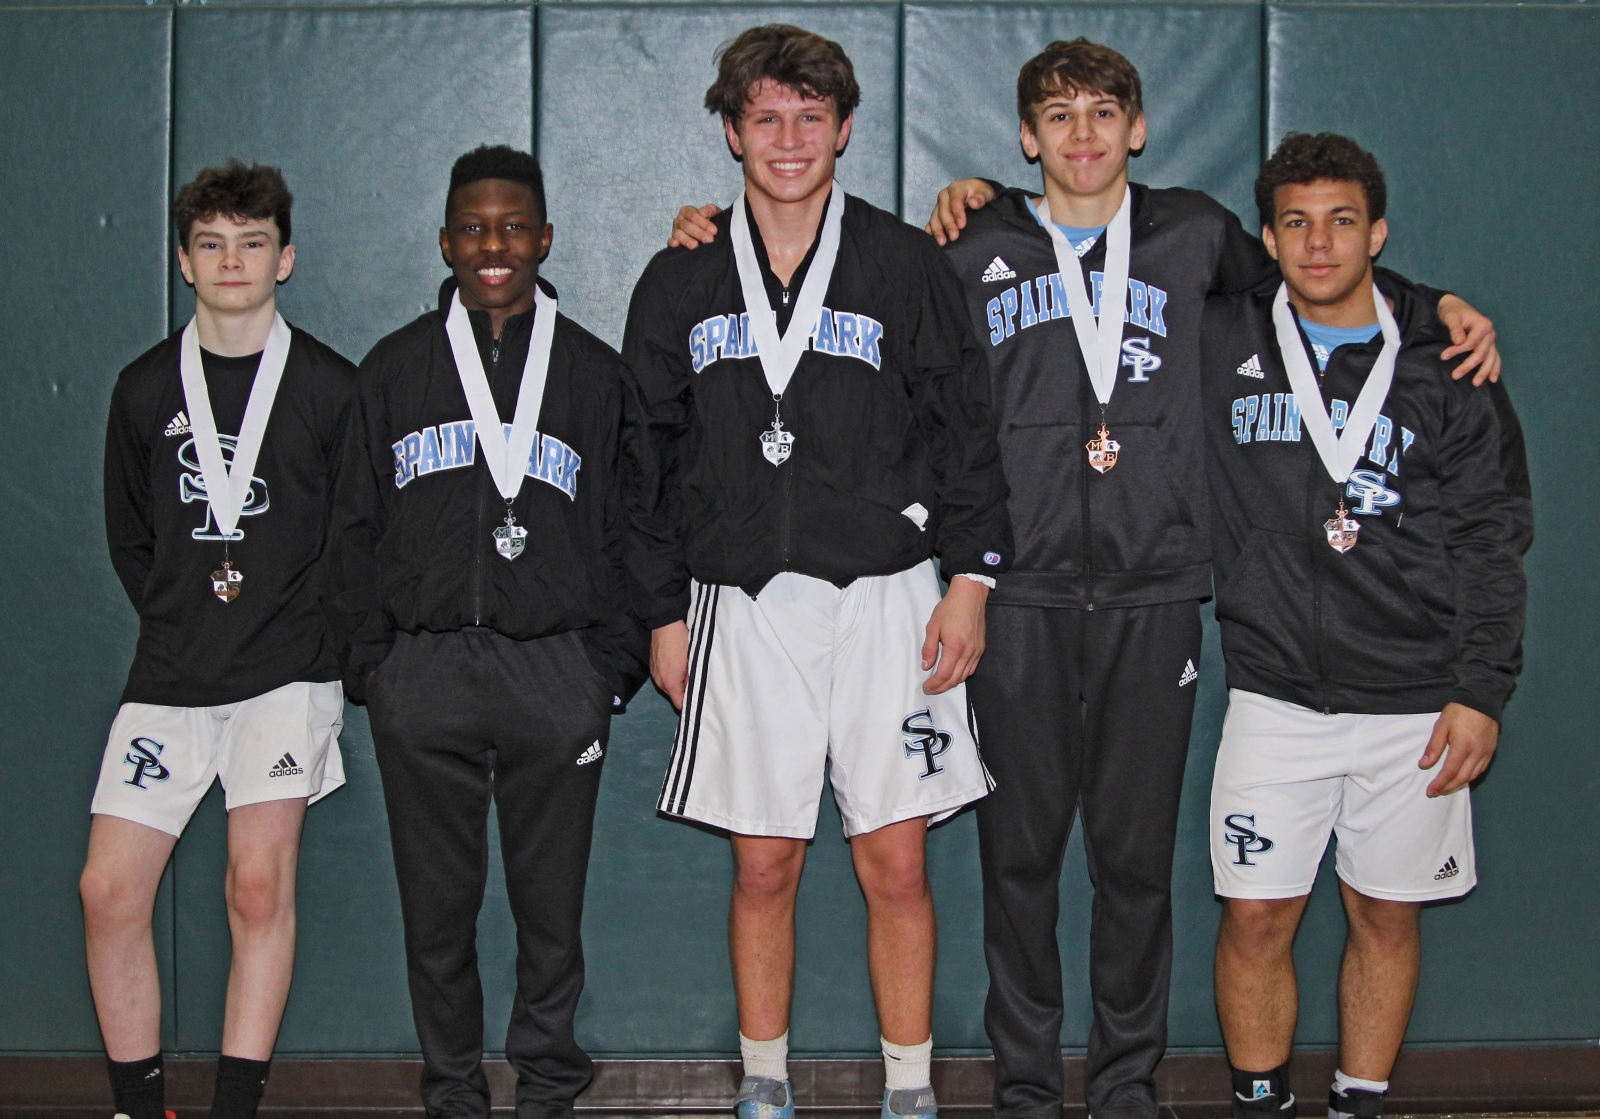 Five Wrestlers Medal at Mountain Brook Invitational